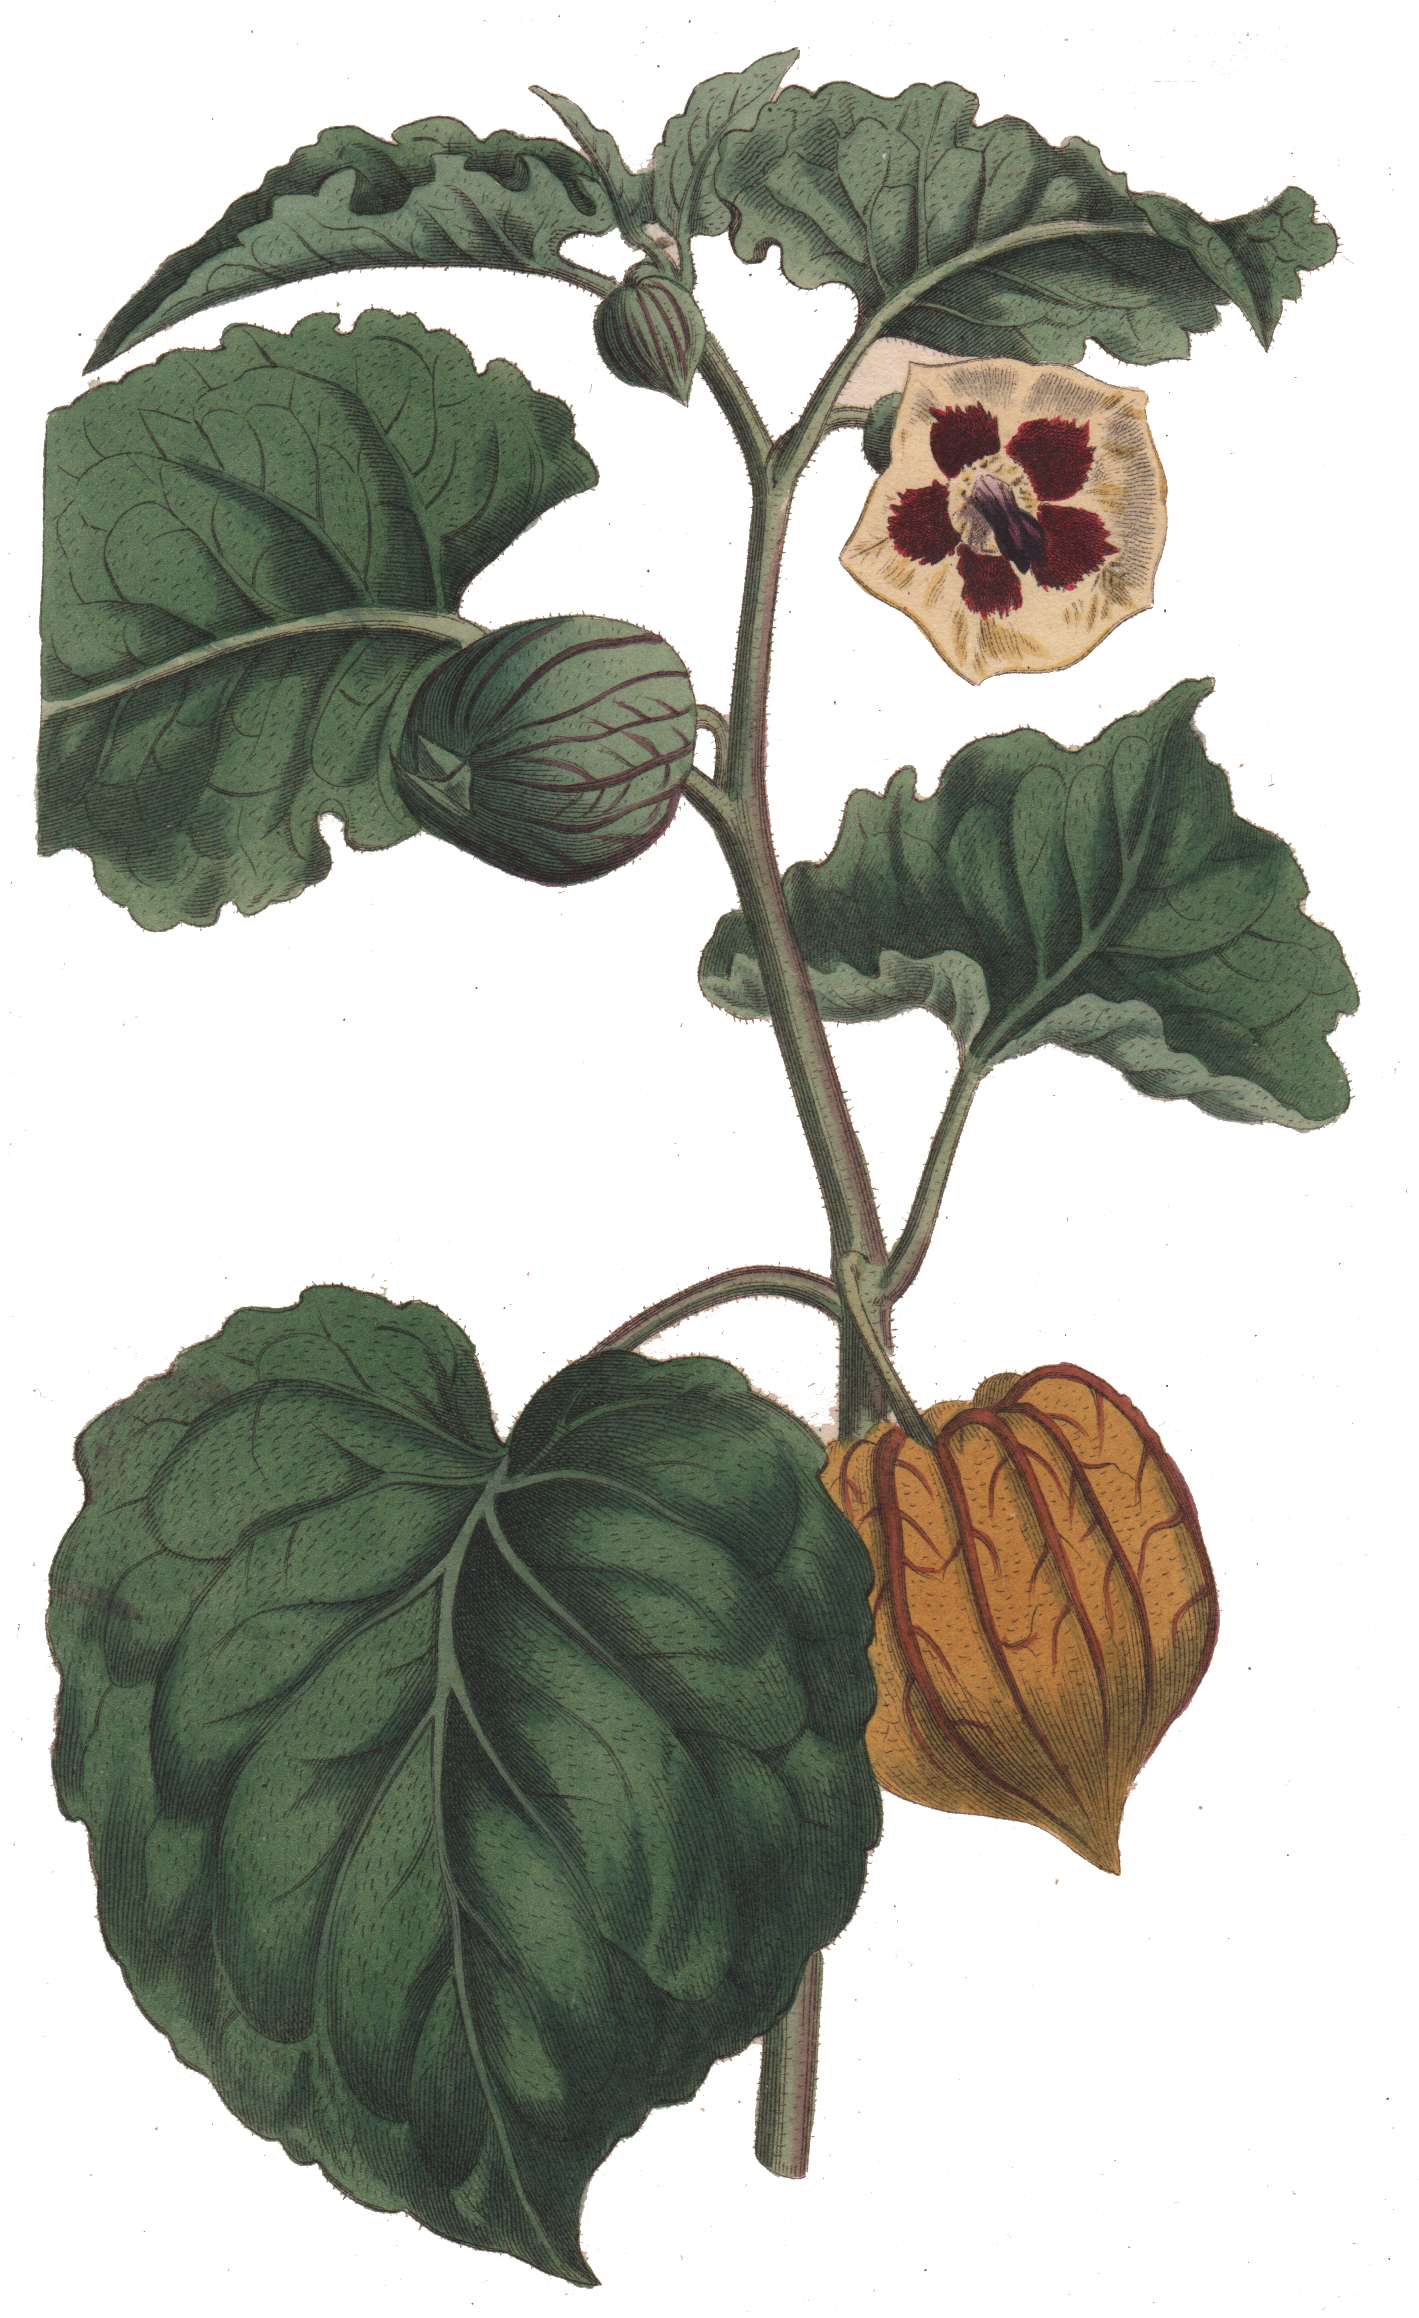 Wm Curtis's Botanical Magazine